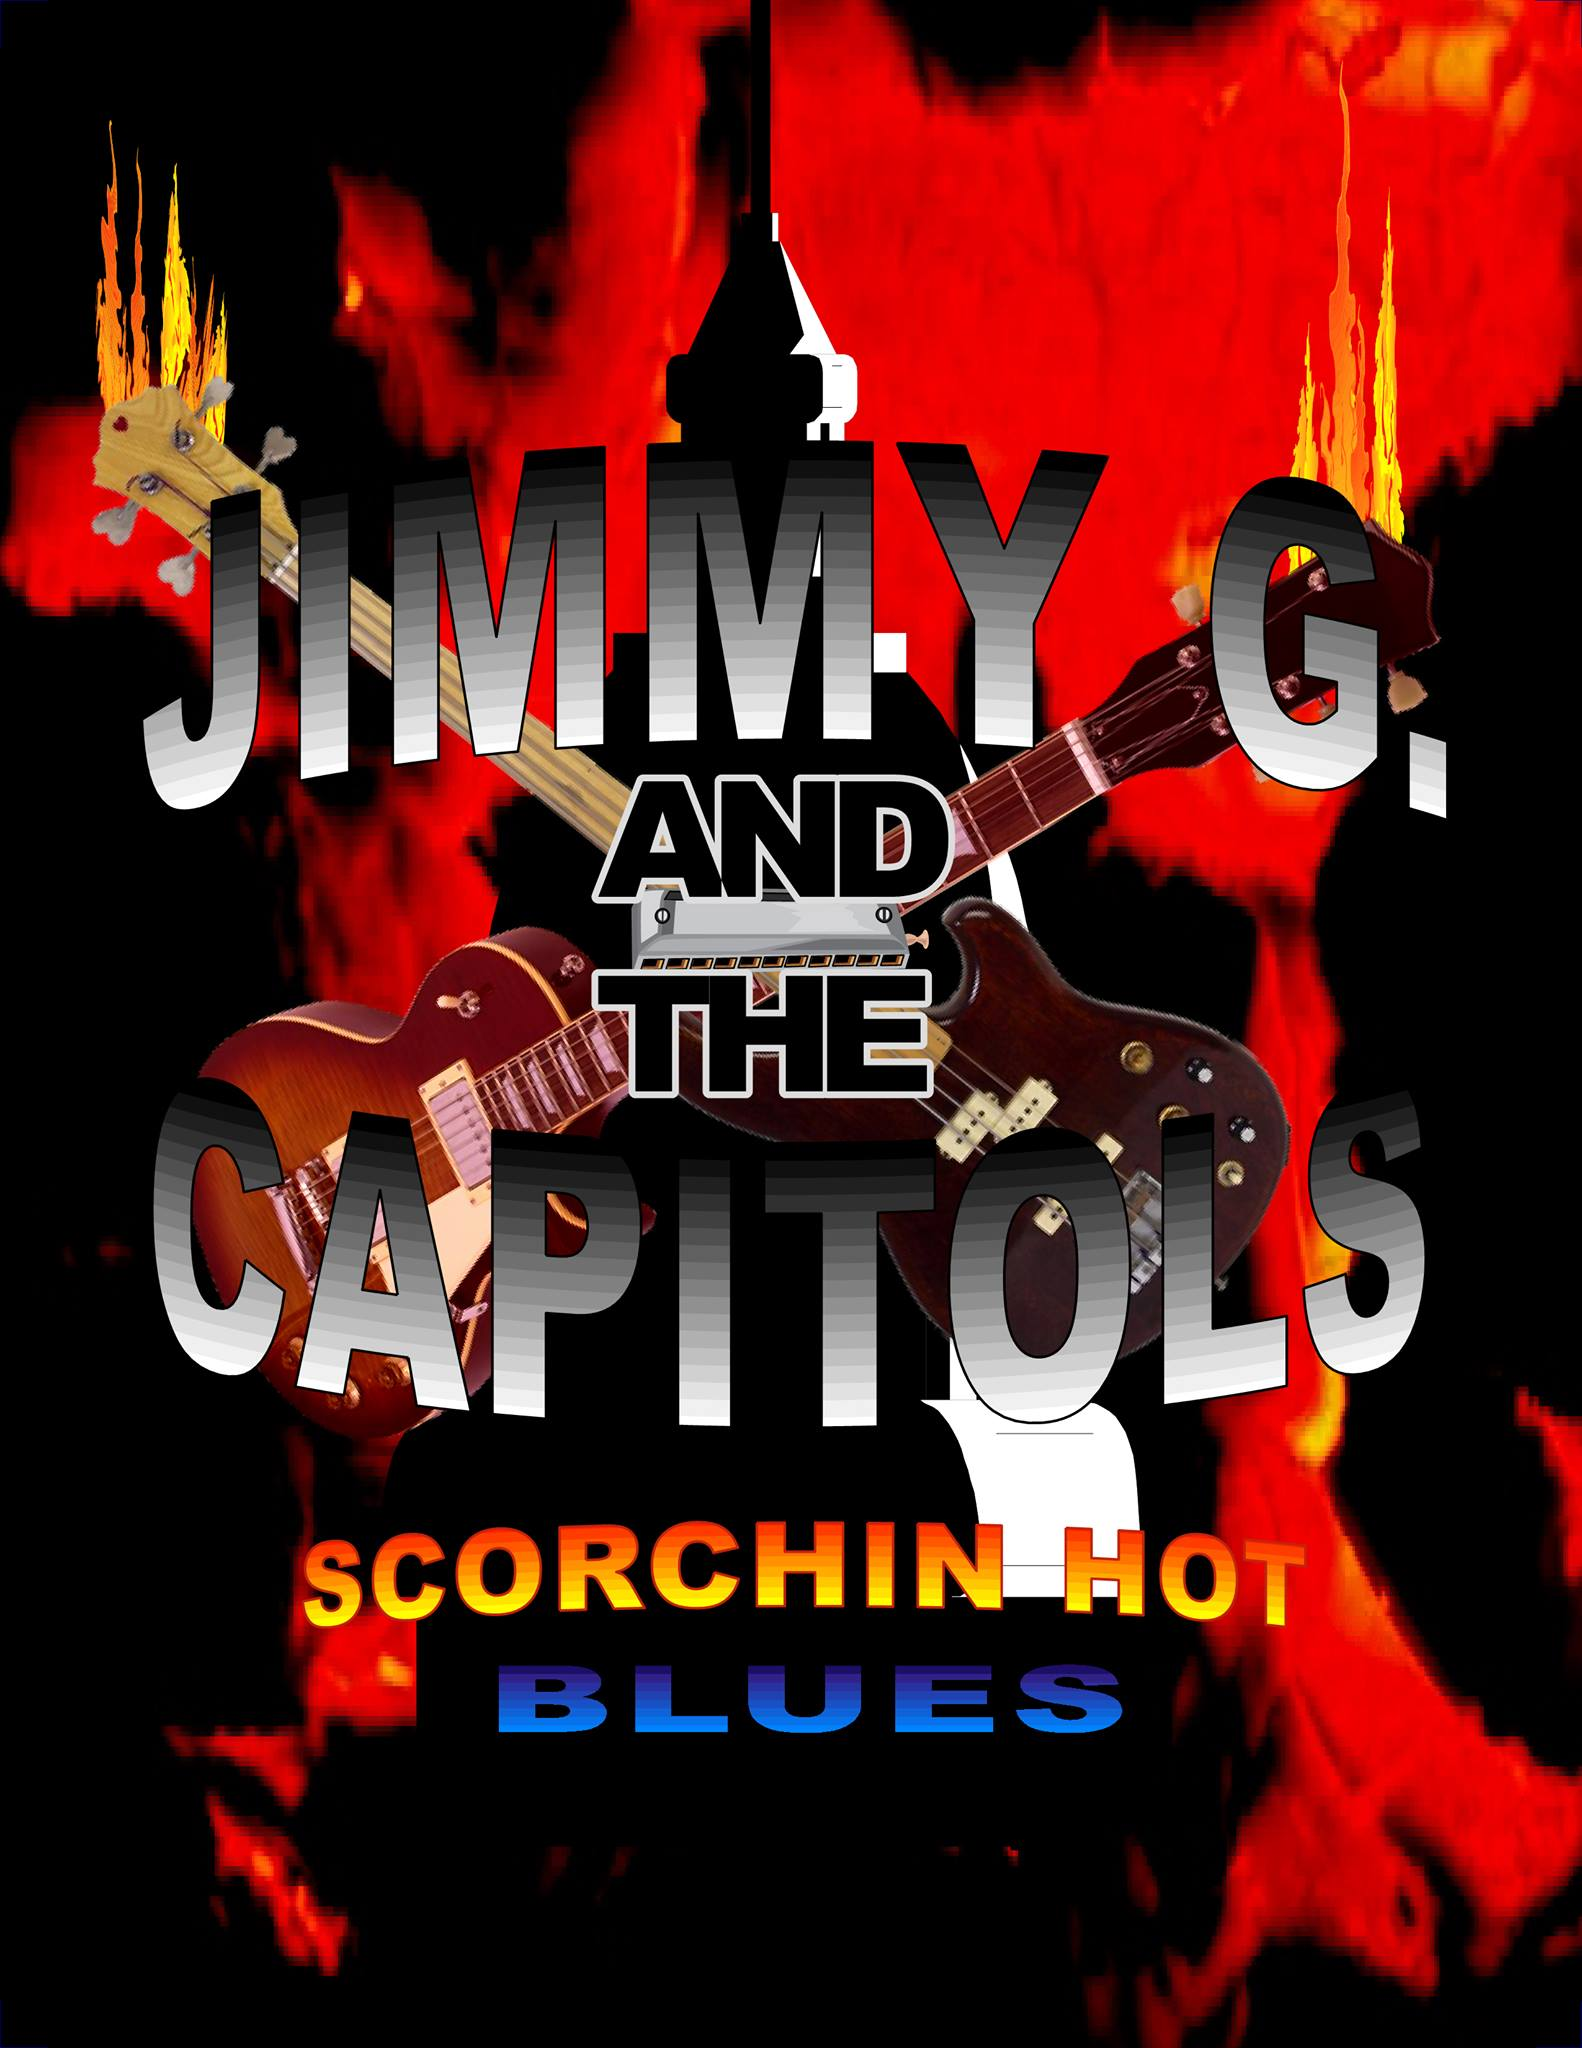 Copy of Jimmy G and the Capitols